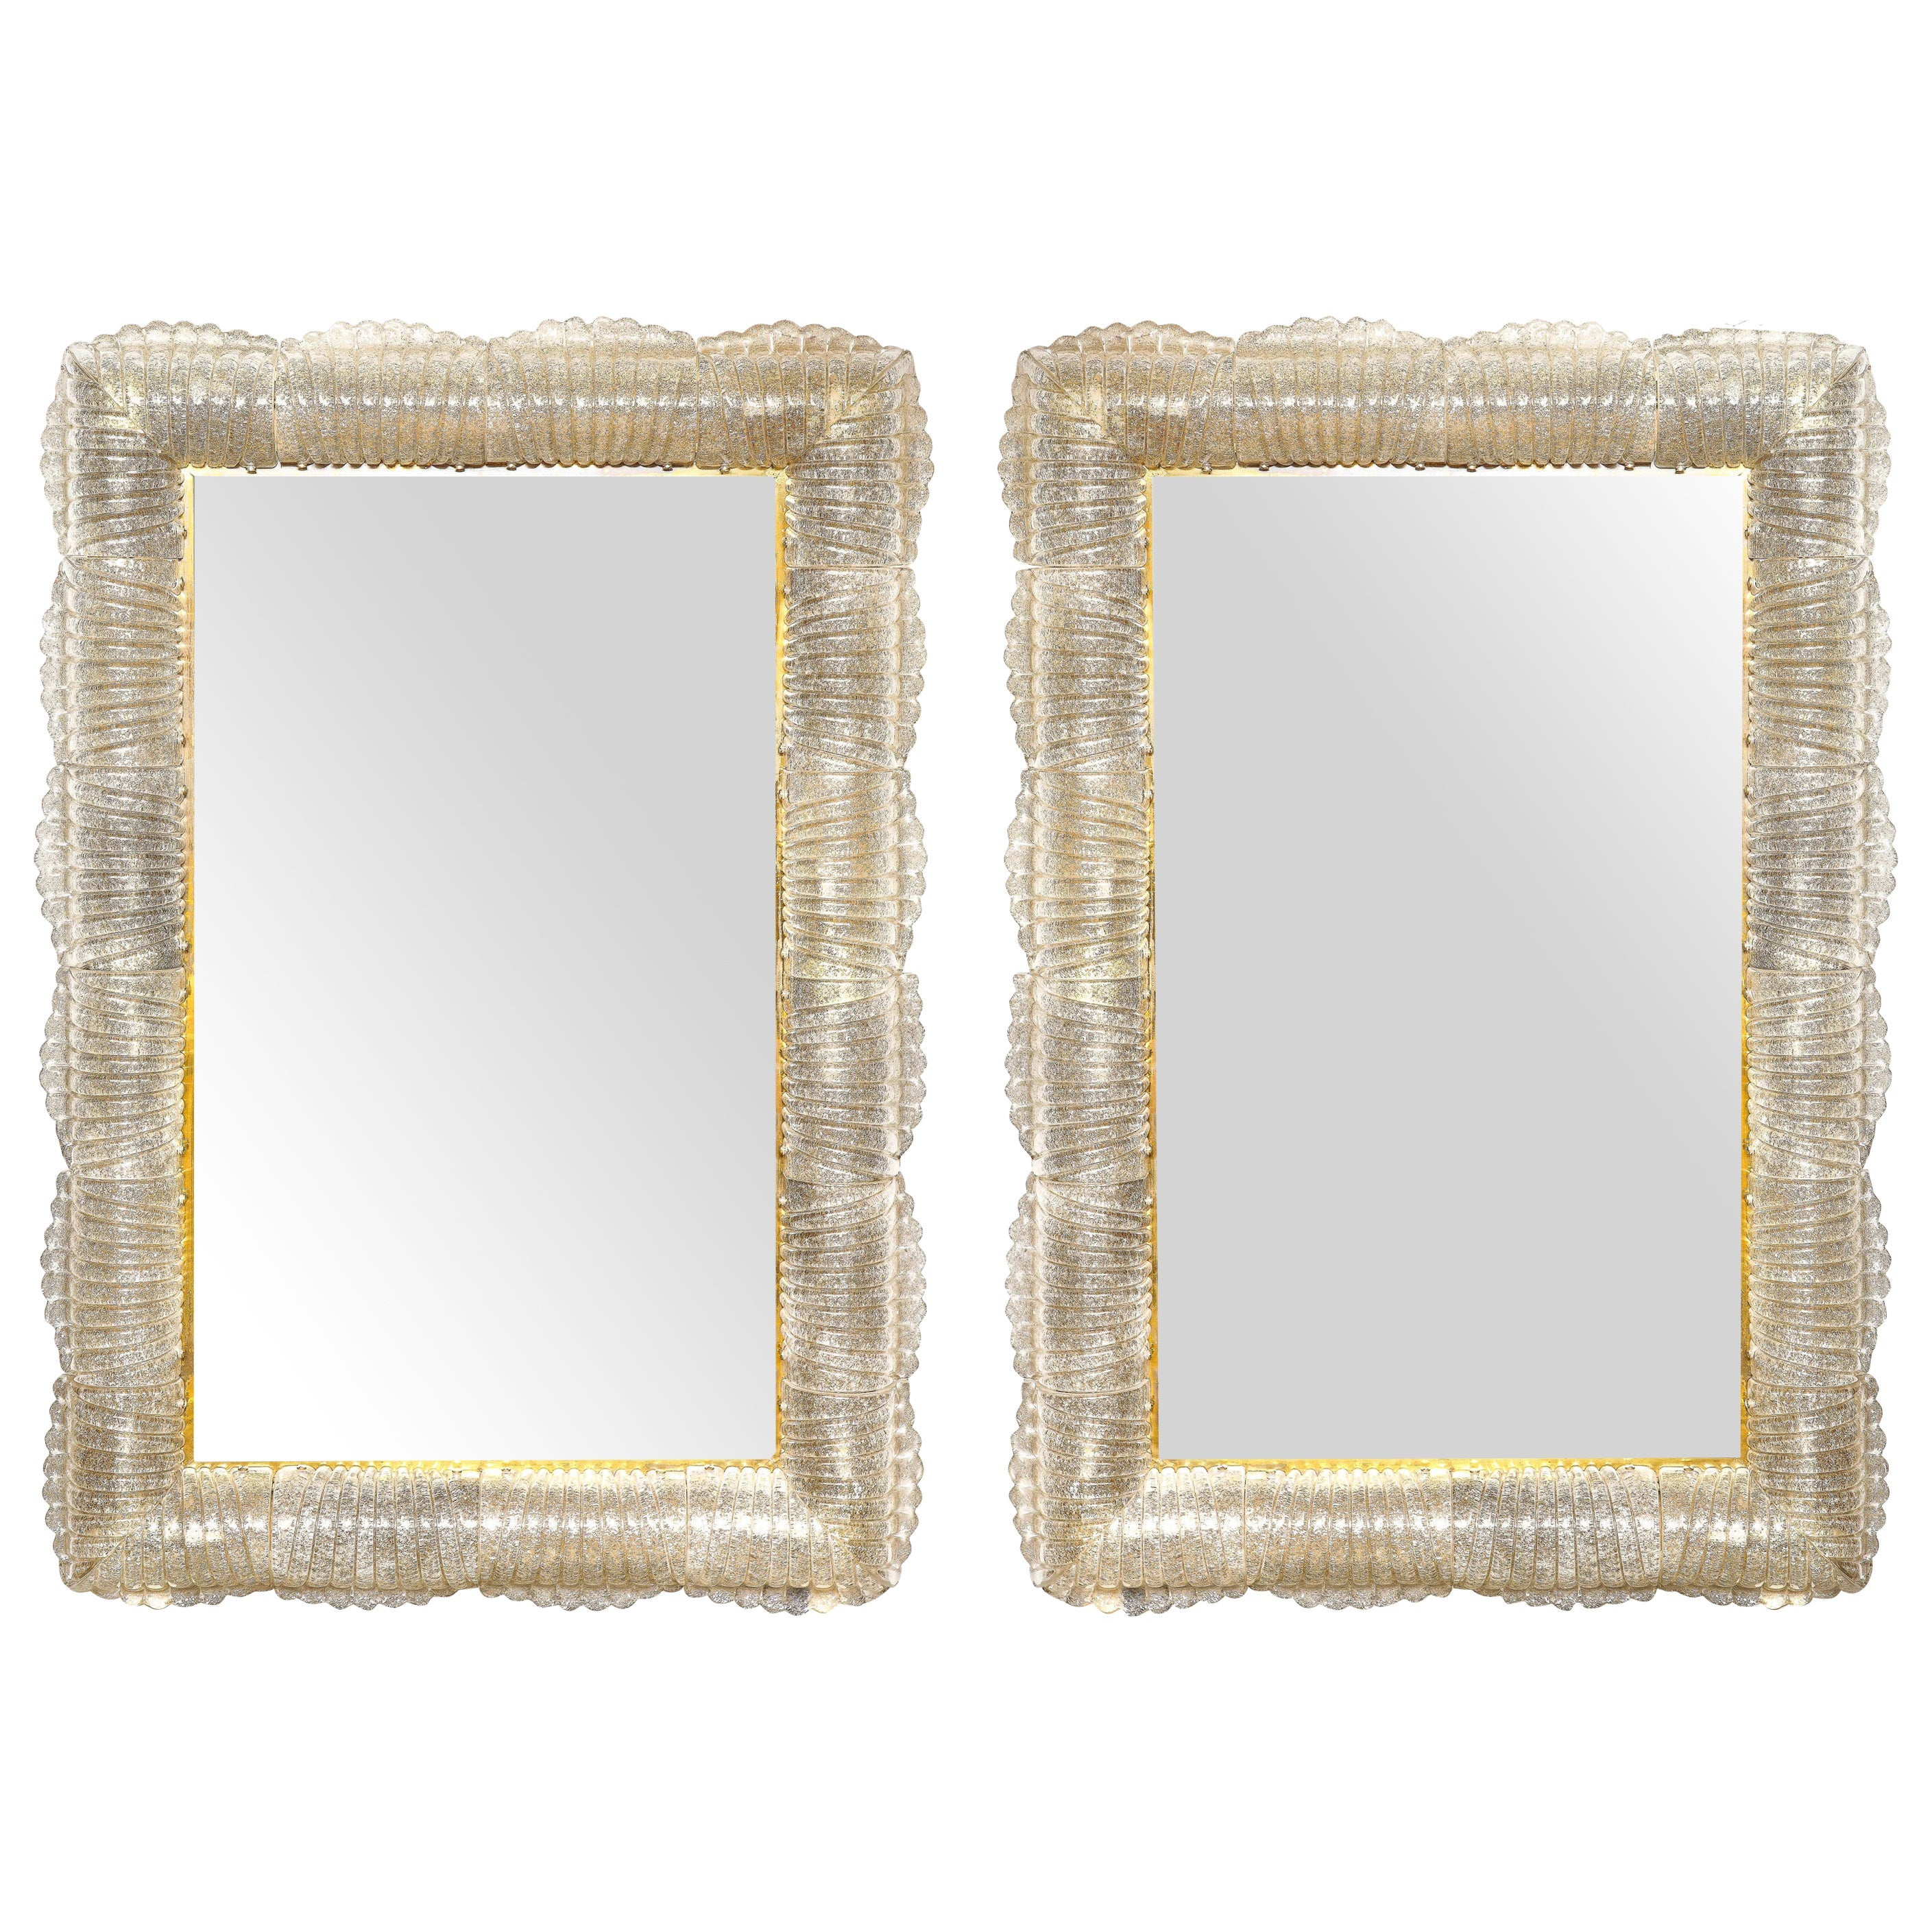 Pair of Textured Smoke Grey Taupe Murano Glass and Brass Mirrors Lighted, Italy